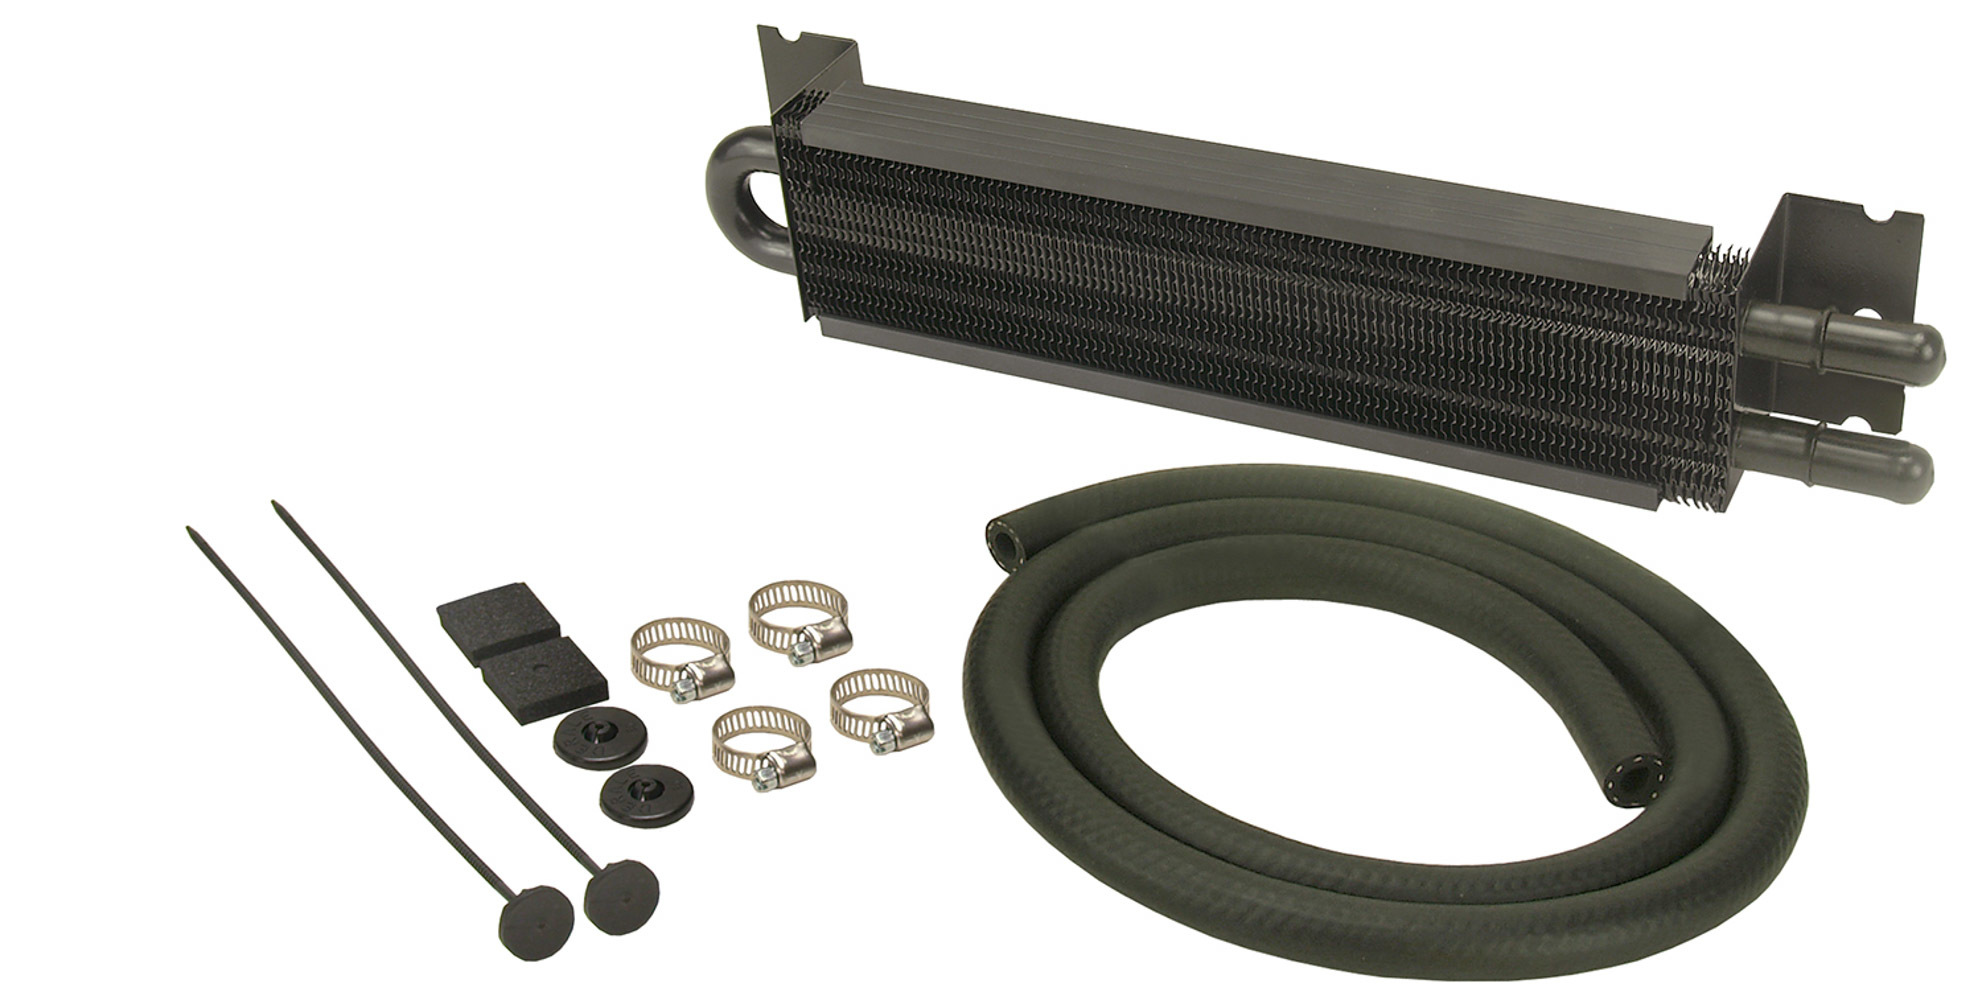 Derale 13211 Fluid Cooler, 7000 Series, 2 Pass, 12-7/8 in L x 2-5/8 in W x 1-3/4 in D, 11/32 in Hose Barb Inlet / Outlet, Hardware / Hose, Aluminum, Black Anodized, Kit